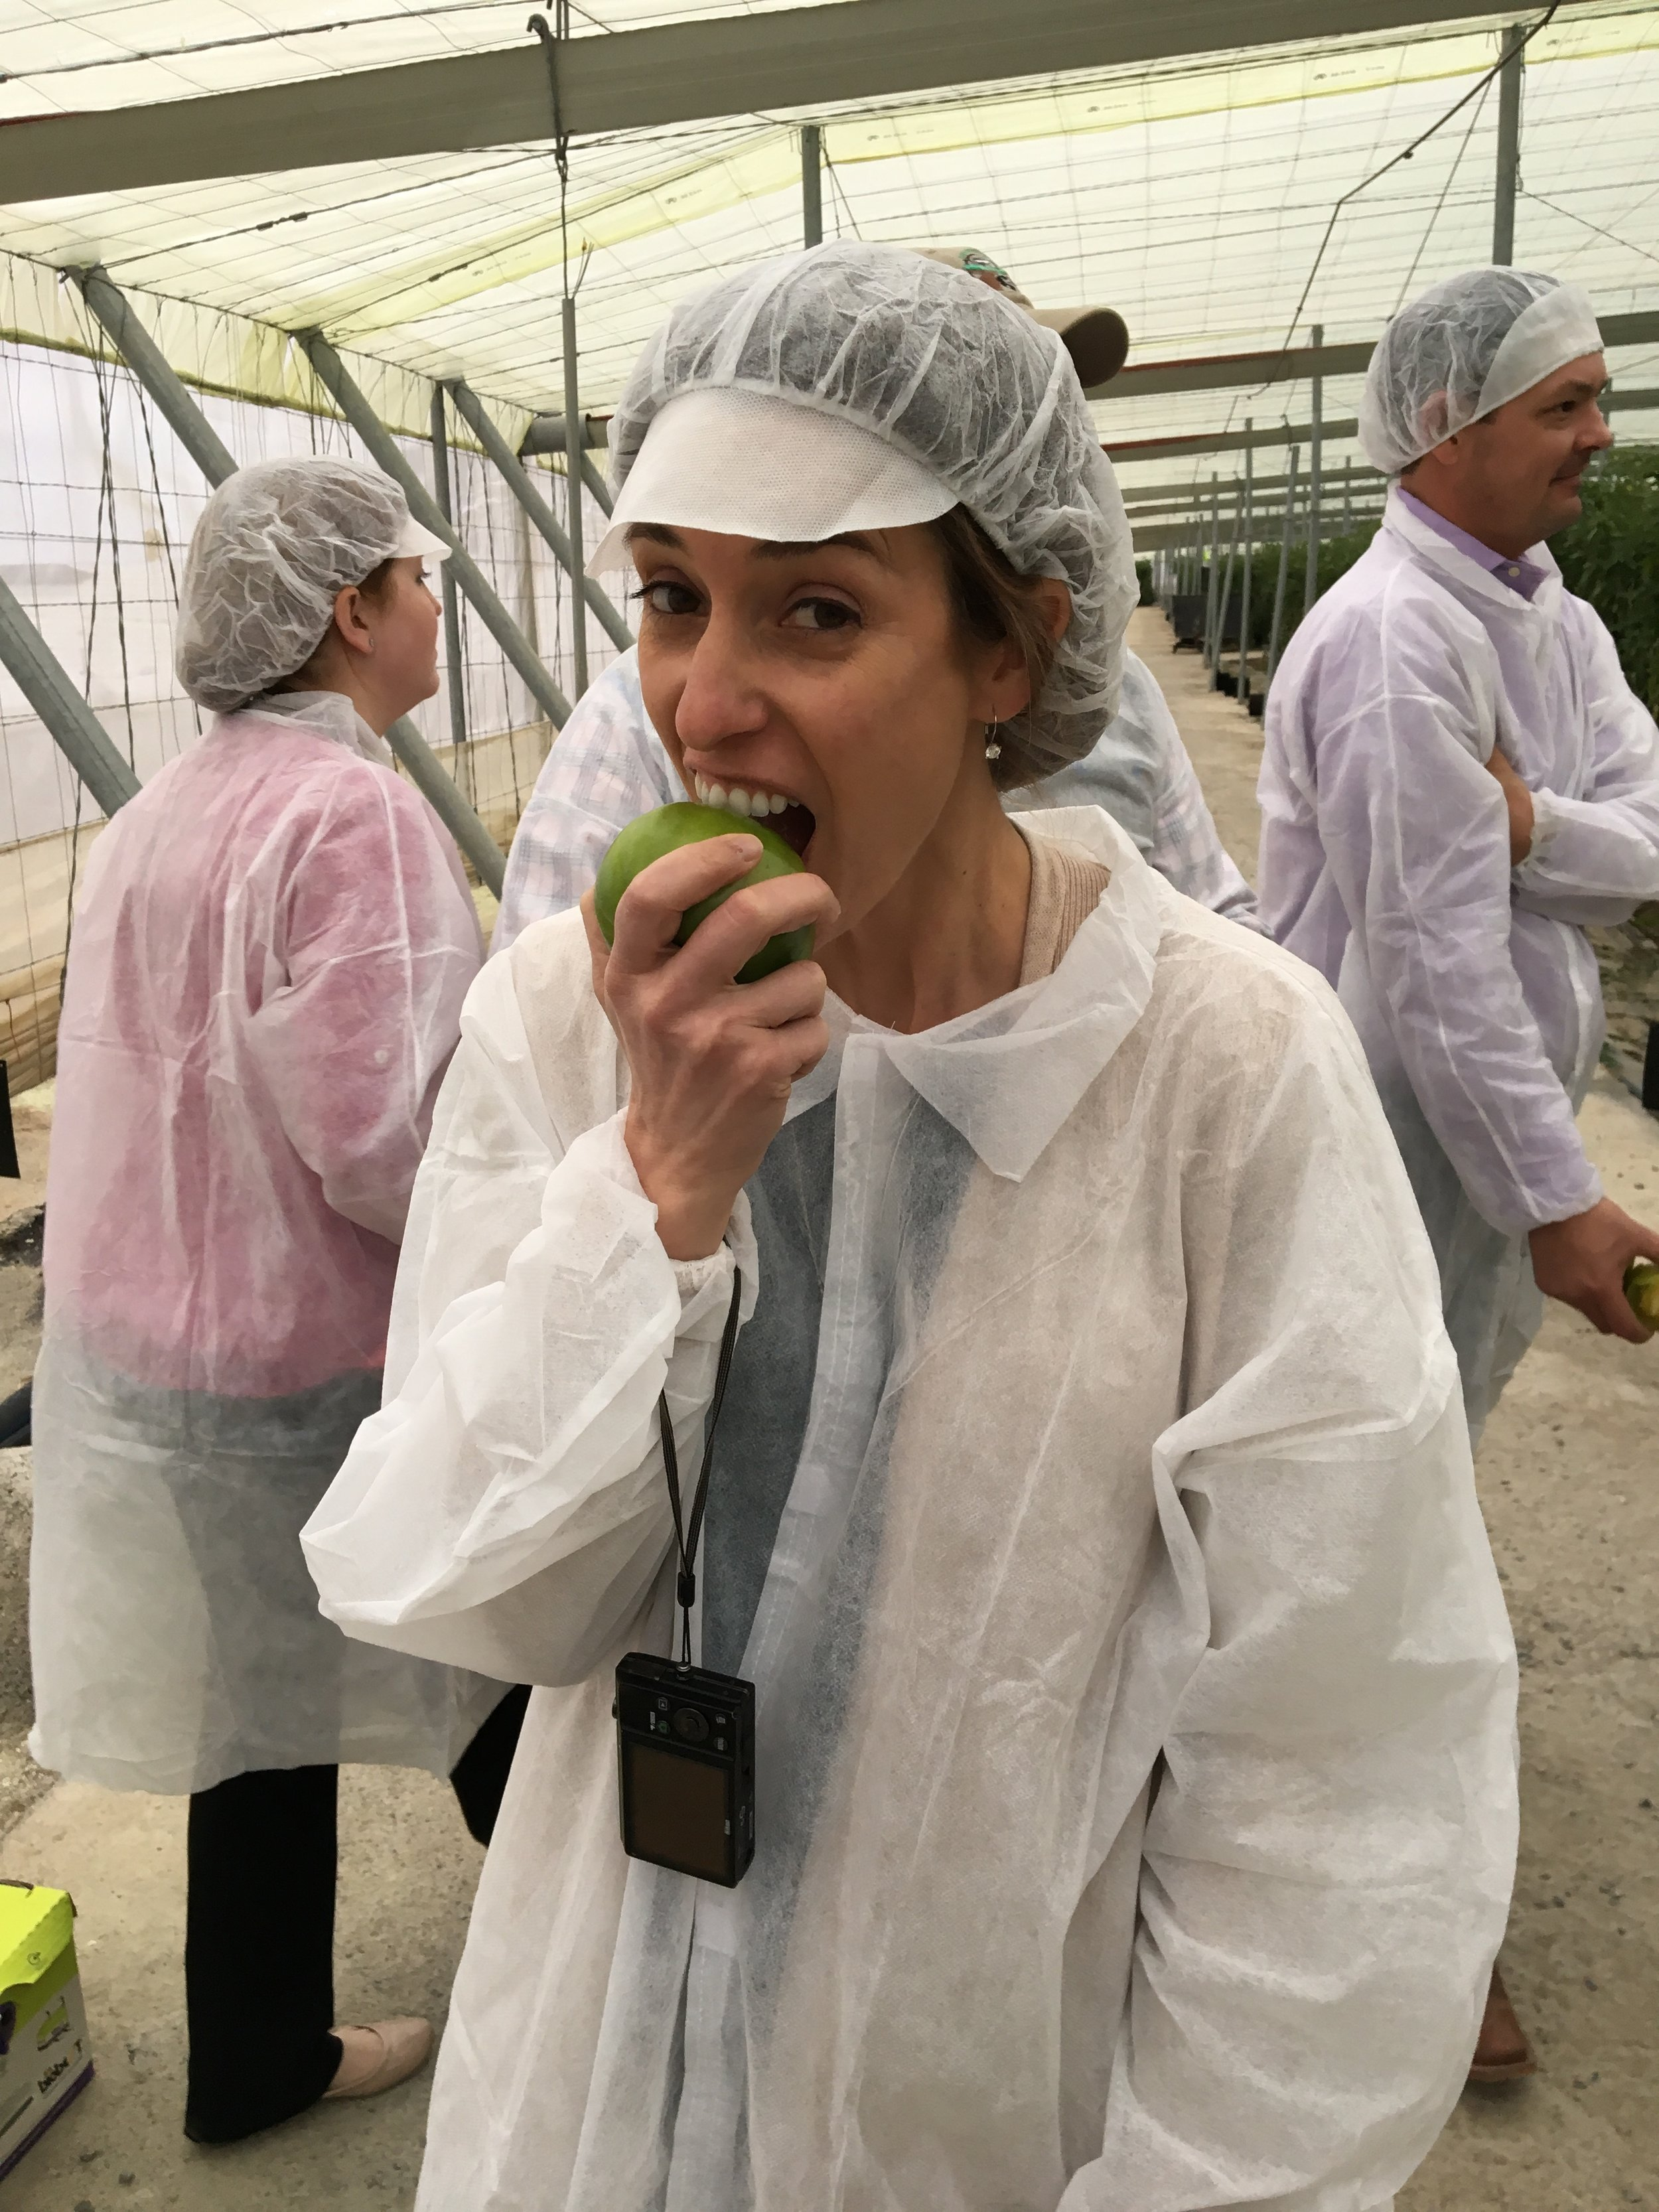 Laura Barham, Brian's wife, couldn't help but take a bite out this fresh green tomato.